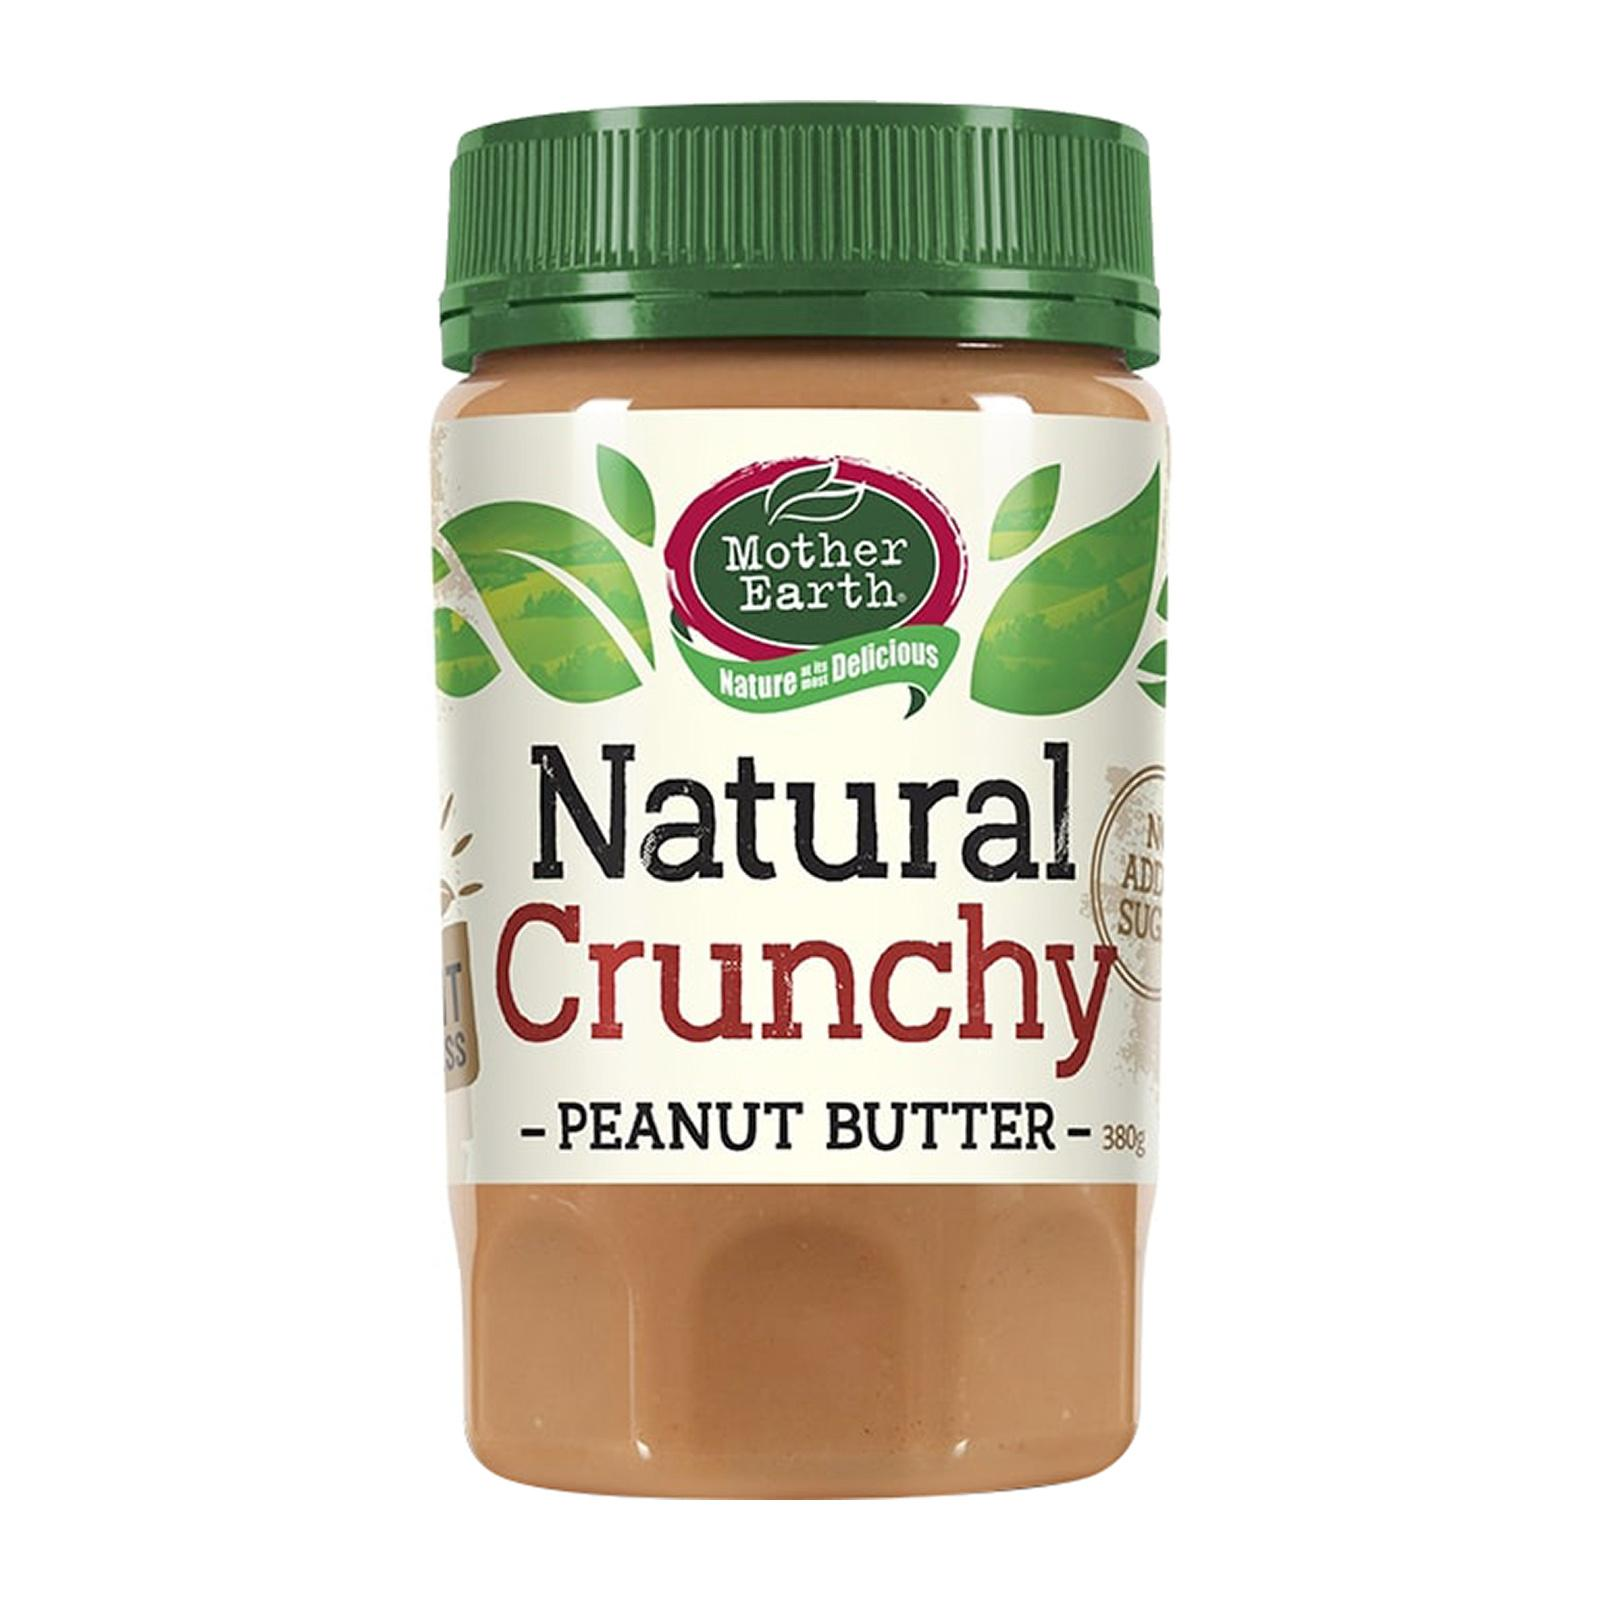 Mother Earth Peanut Butter Crunchy - by Optimo Foods